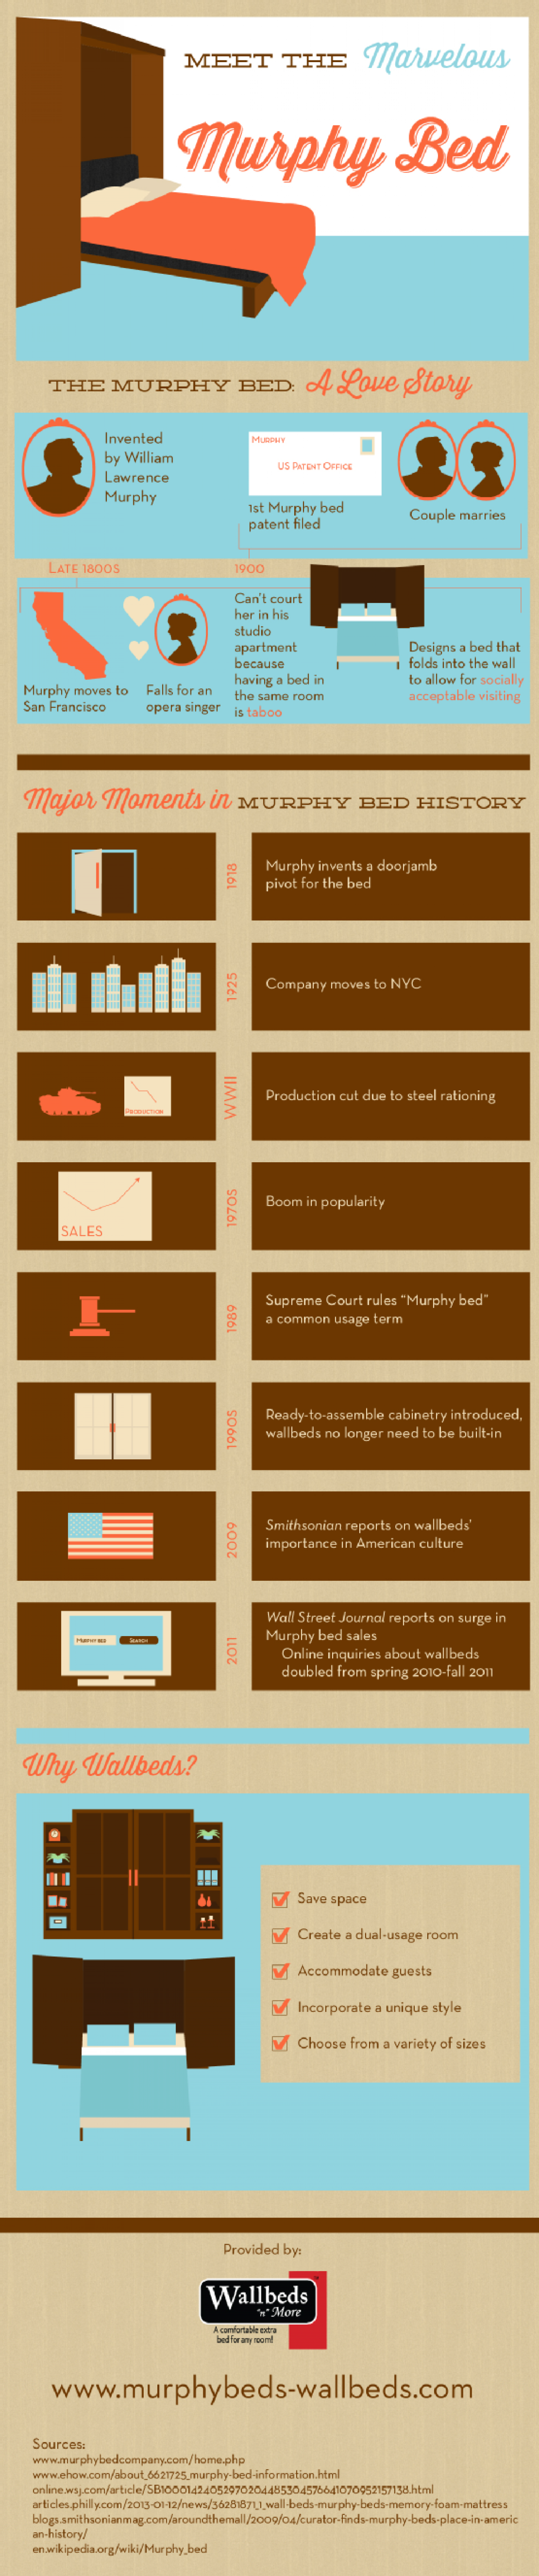 Meet the Marvelous Murphy Bed Infographic